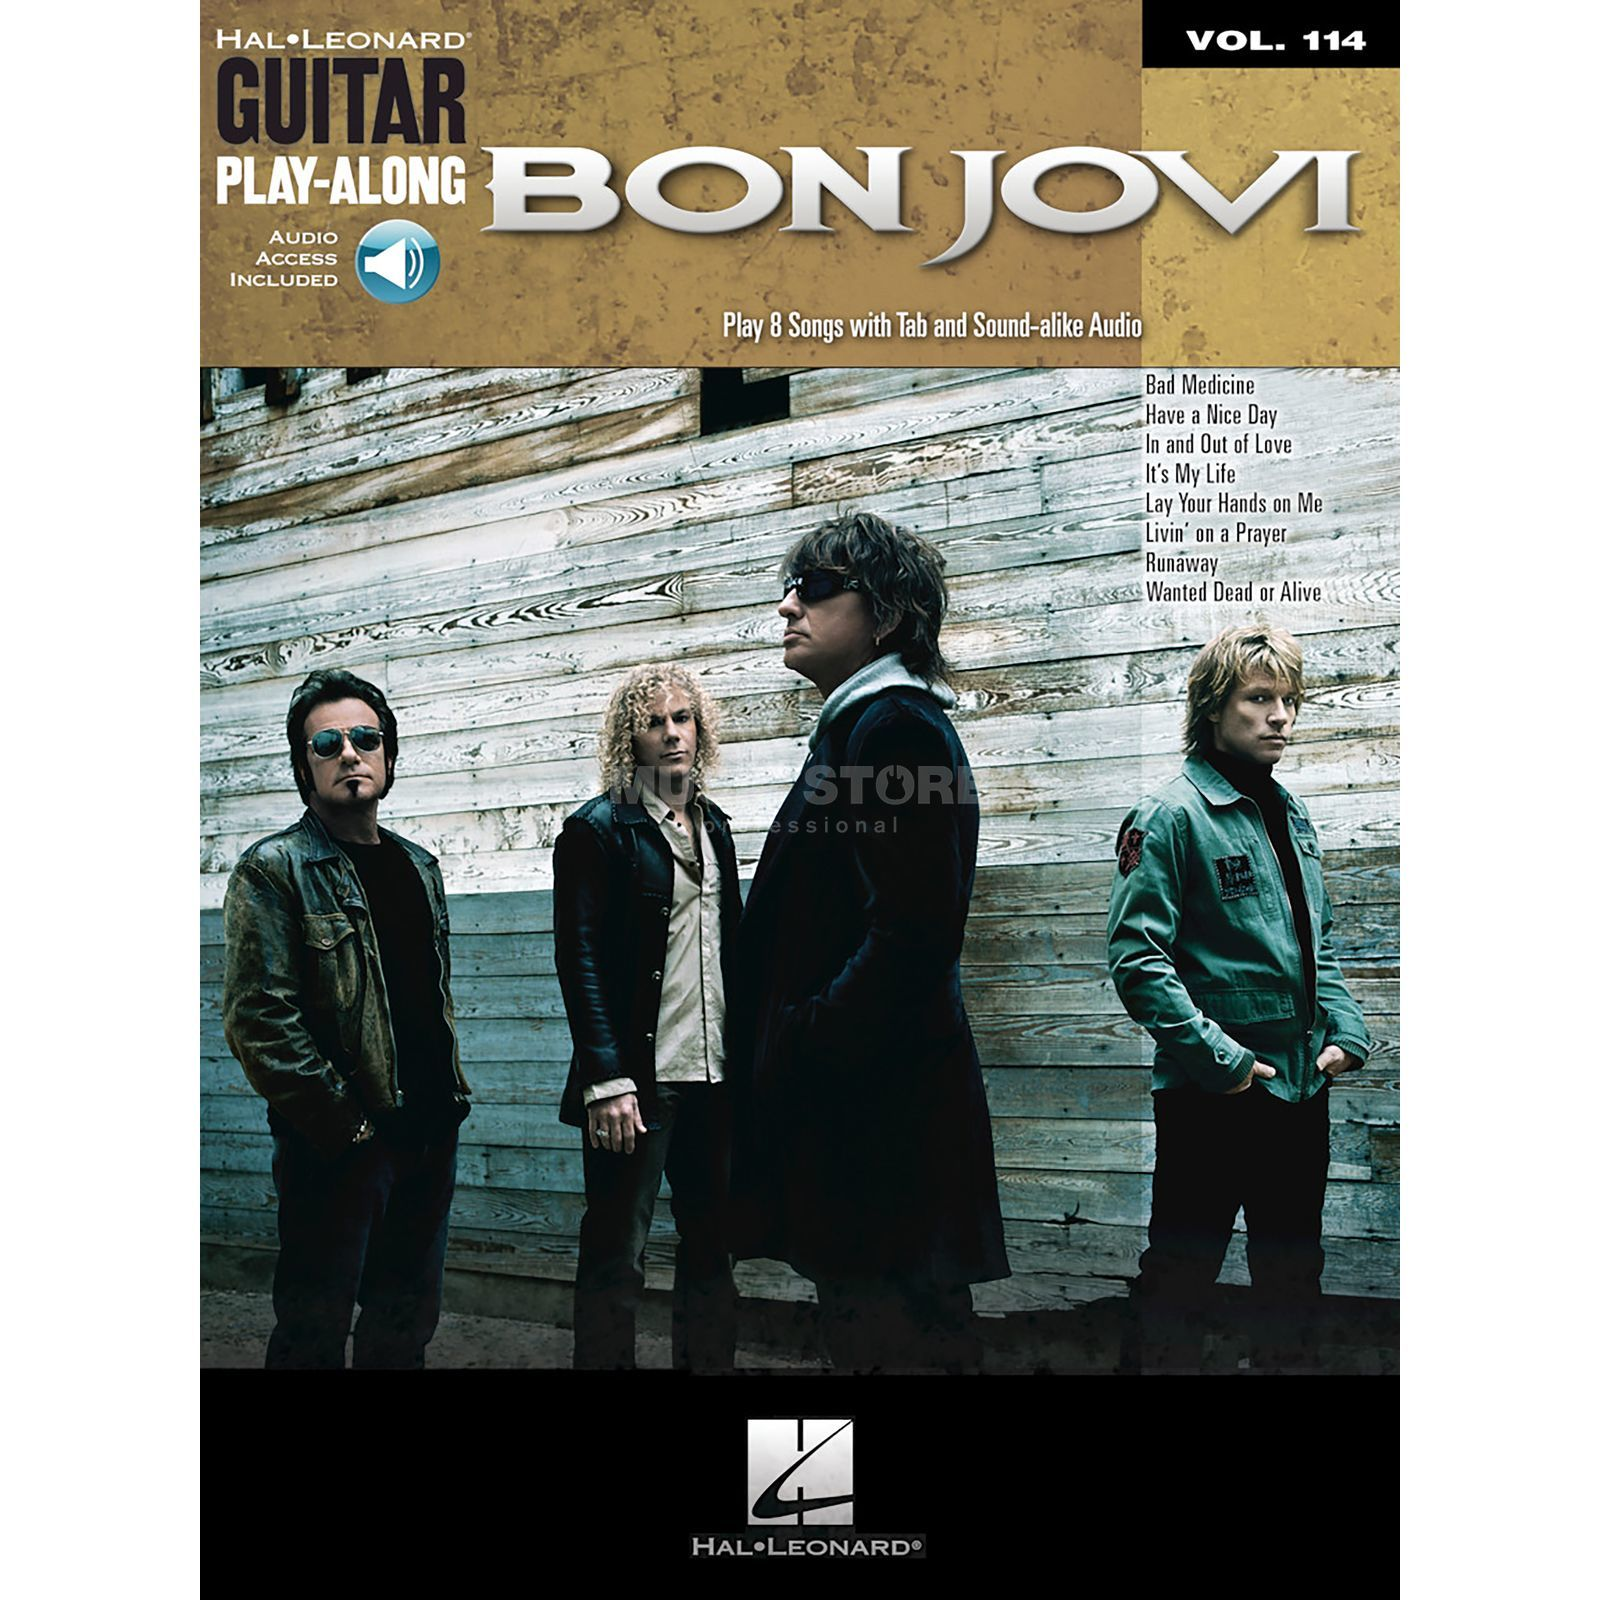 Hal Leonard Guitar Play-Along Volume 114: Bon Jovi Product Image